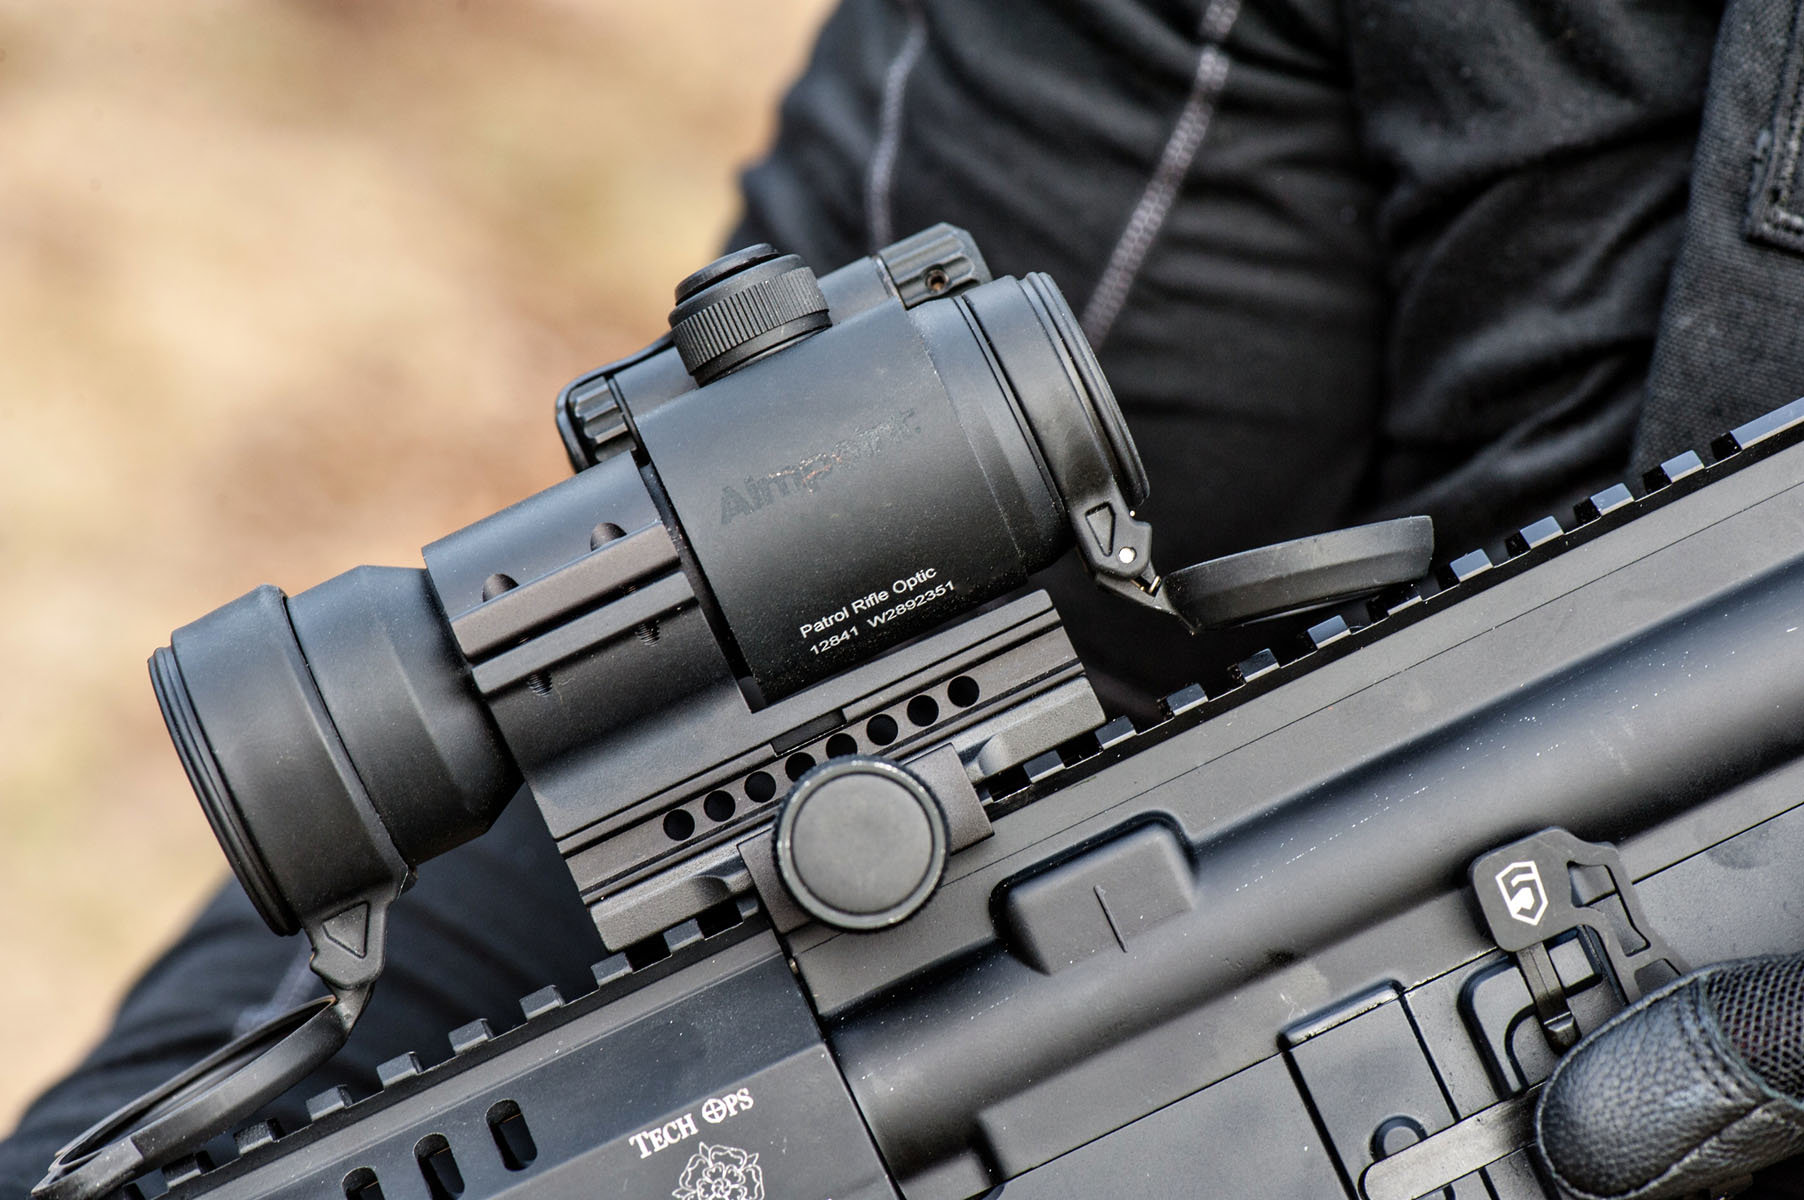 aimpoint pro advanced technology